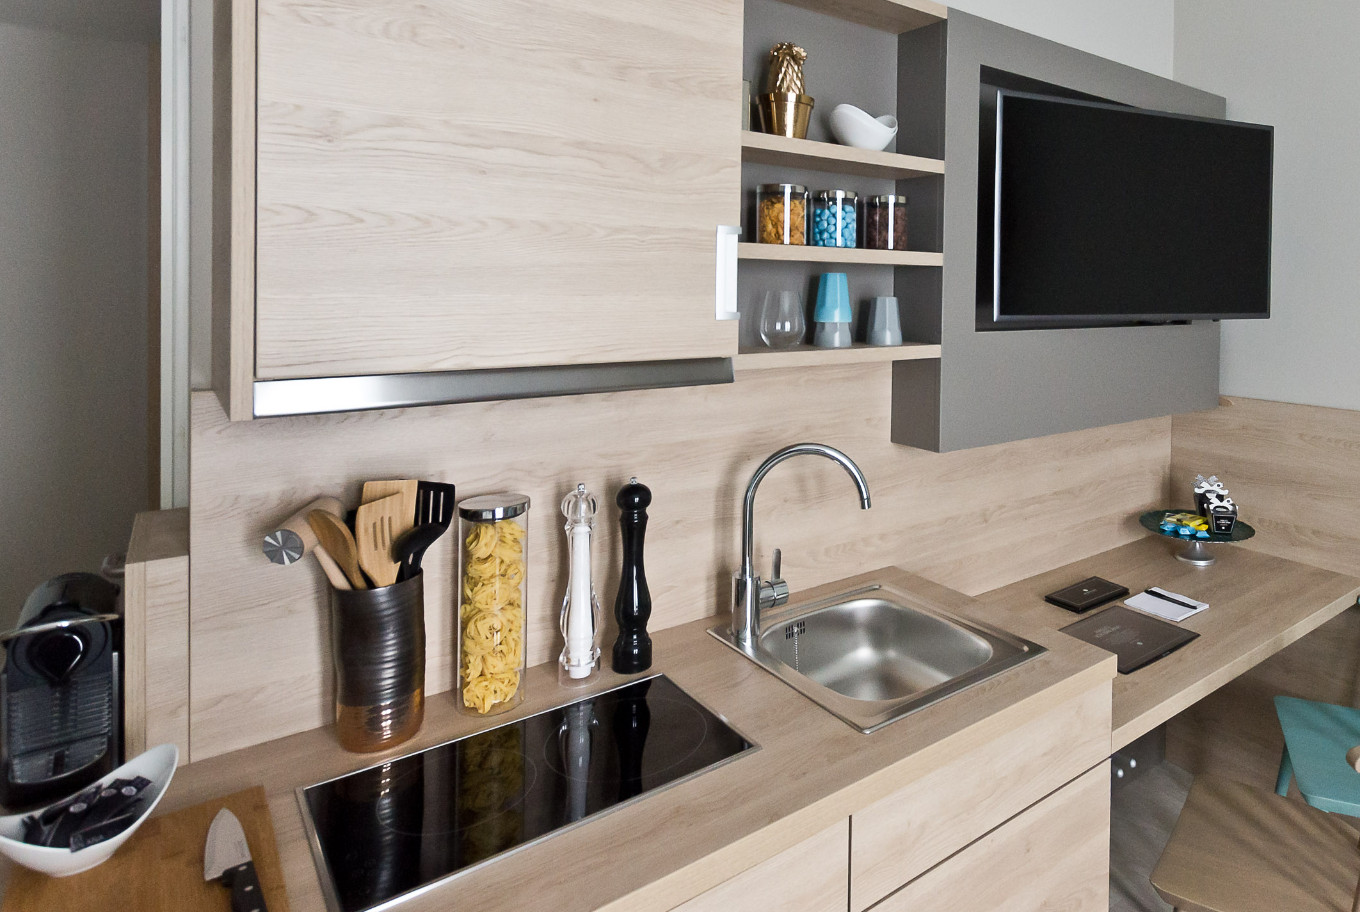 In our Arthotel ANA Living you are also offered a fully equipped kitchen.